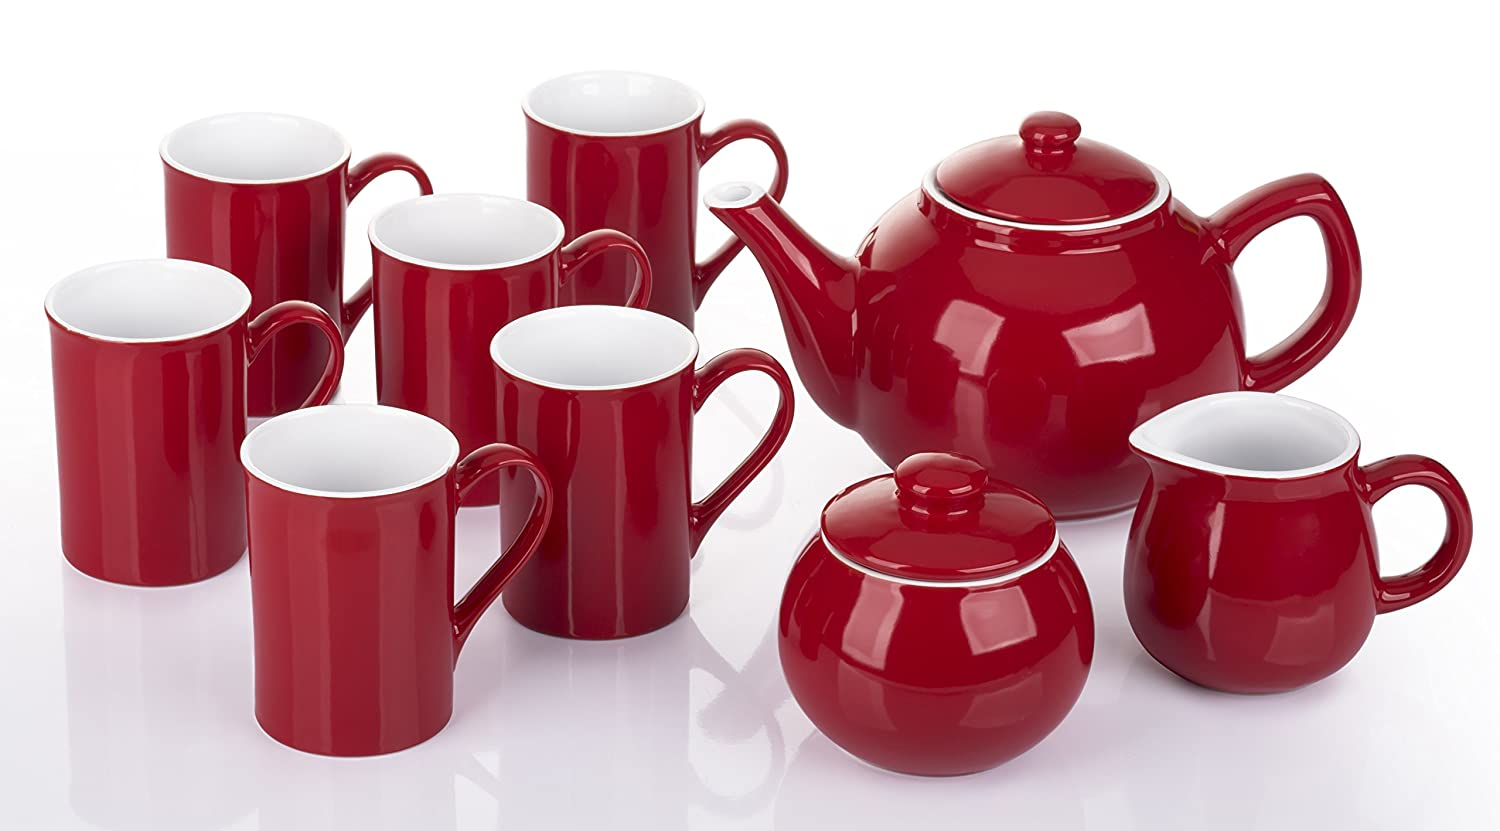 9 Piece 2Tone Red & White Tea Set Waterside Fine China